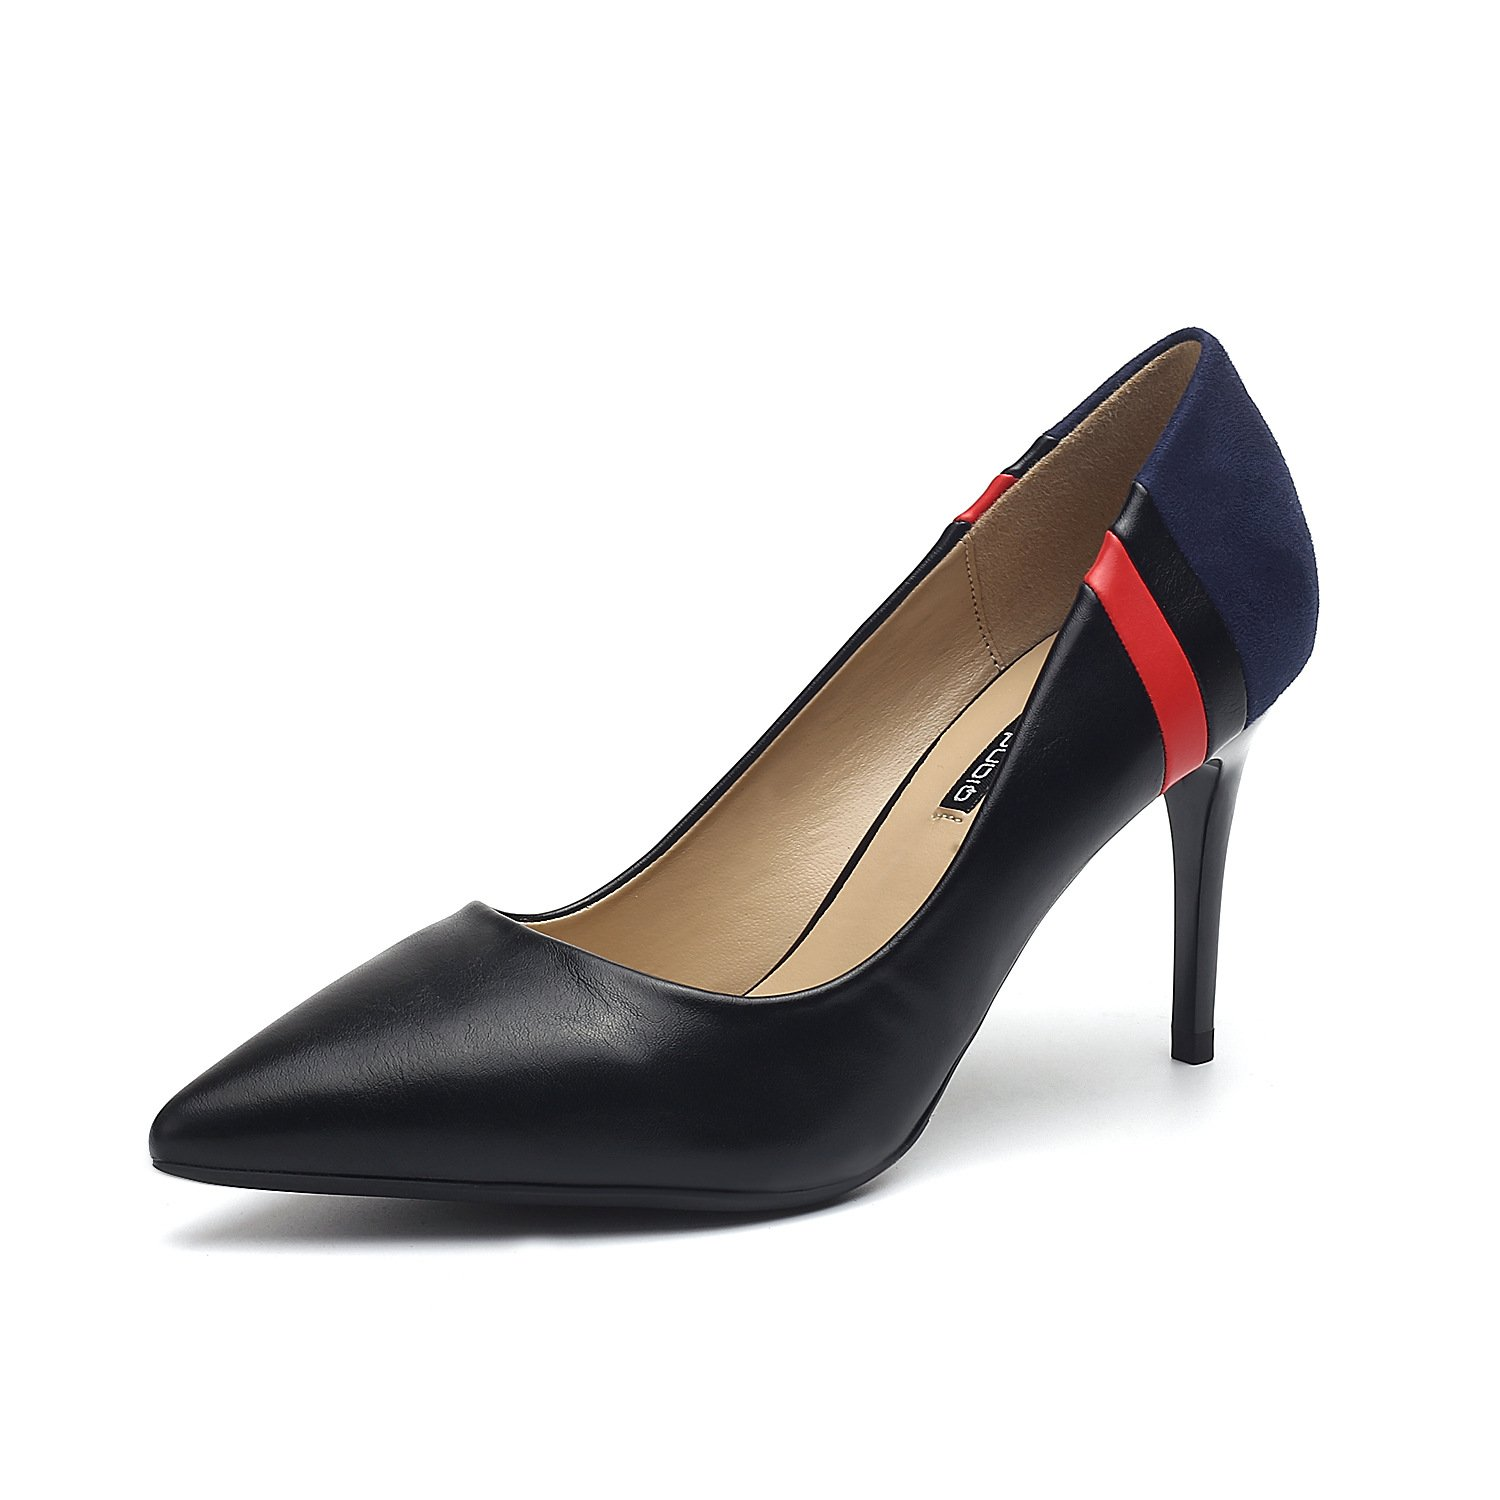 Women's singles shoes tip light is fine with stylish stitching color elegant high-heeled shoes, Black,35